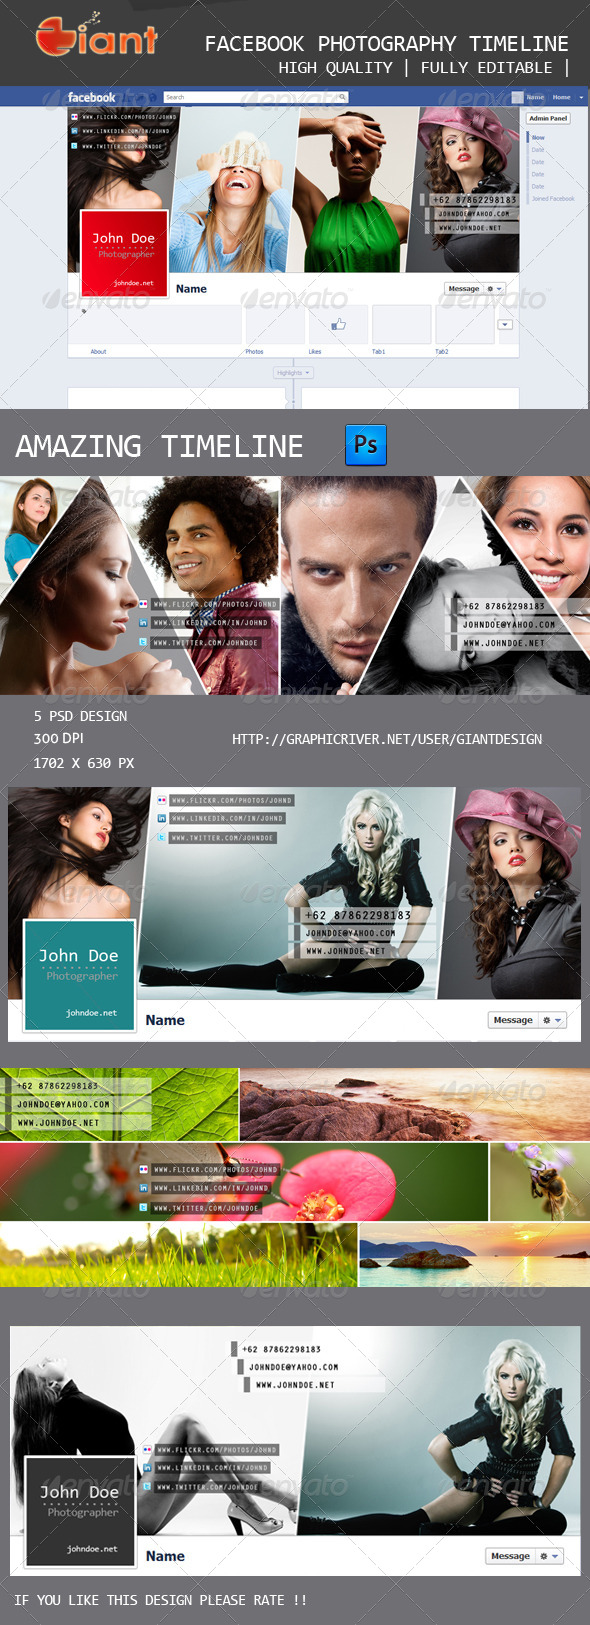 GraphicRiver Facebook Photography Timeline 5432182